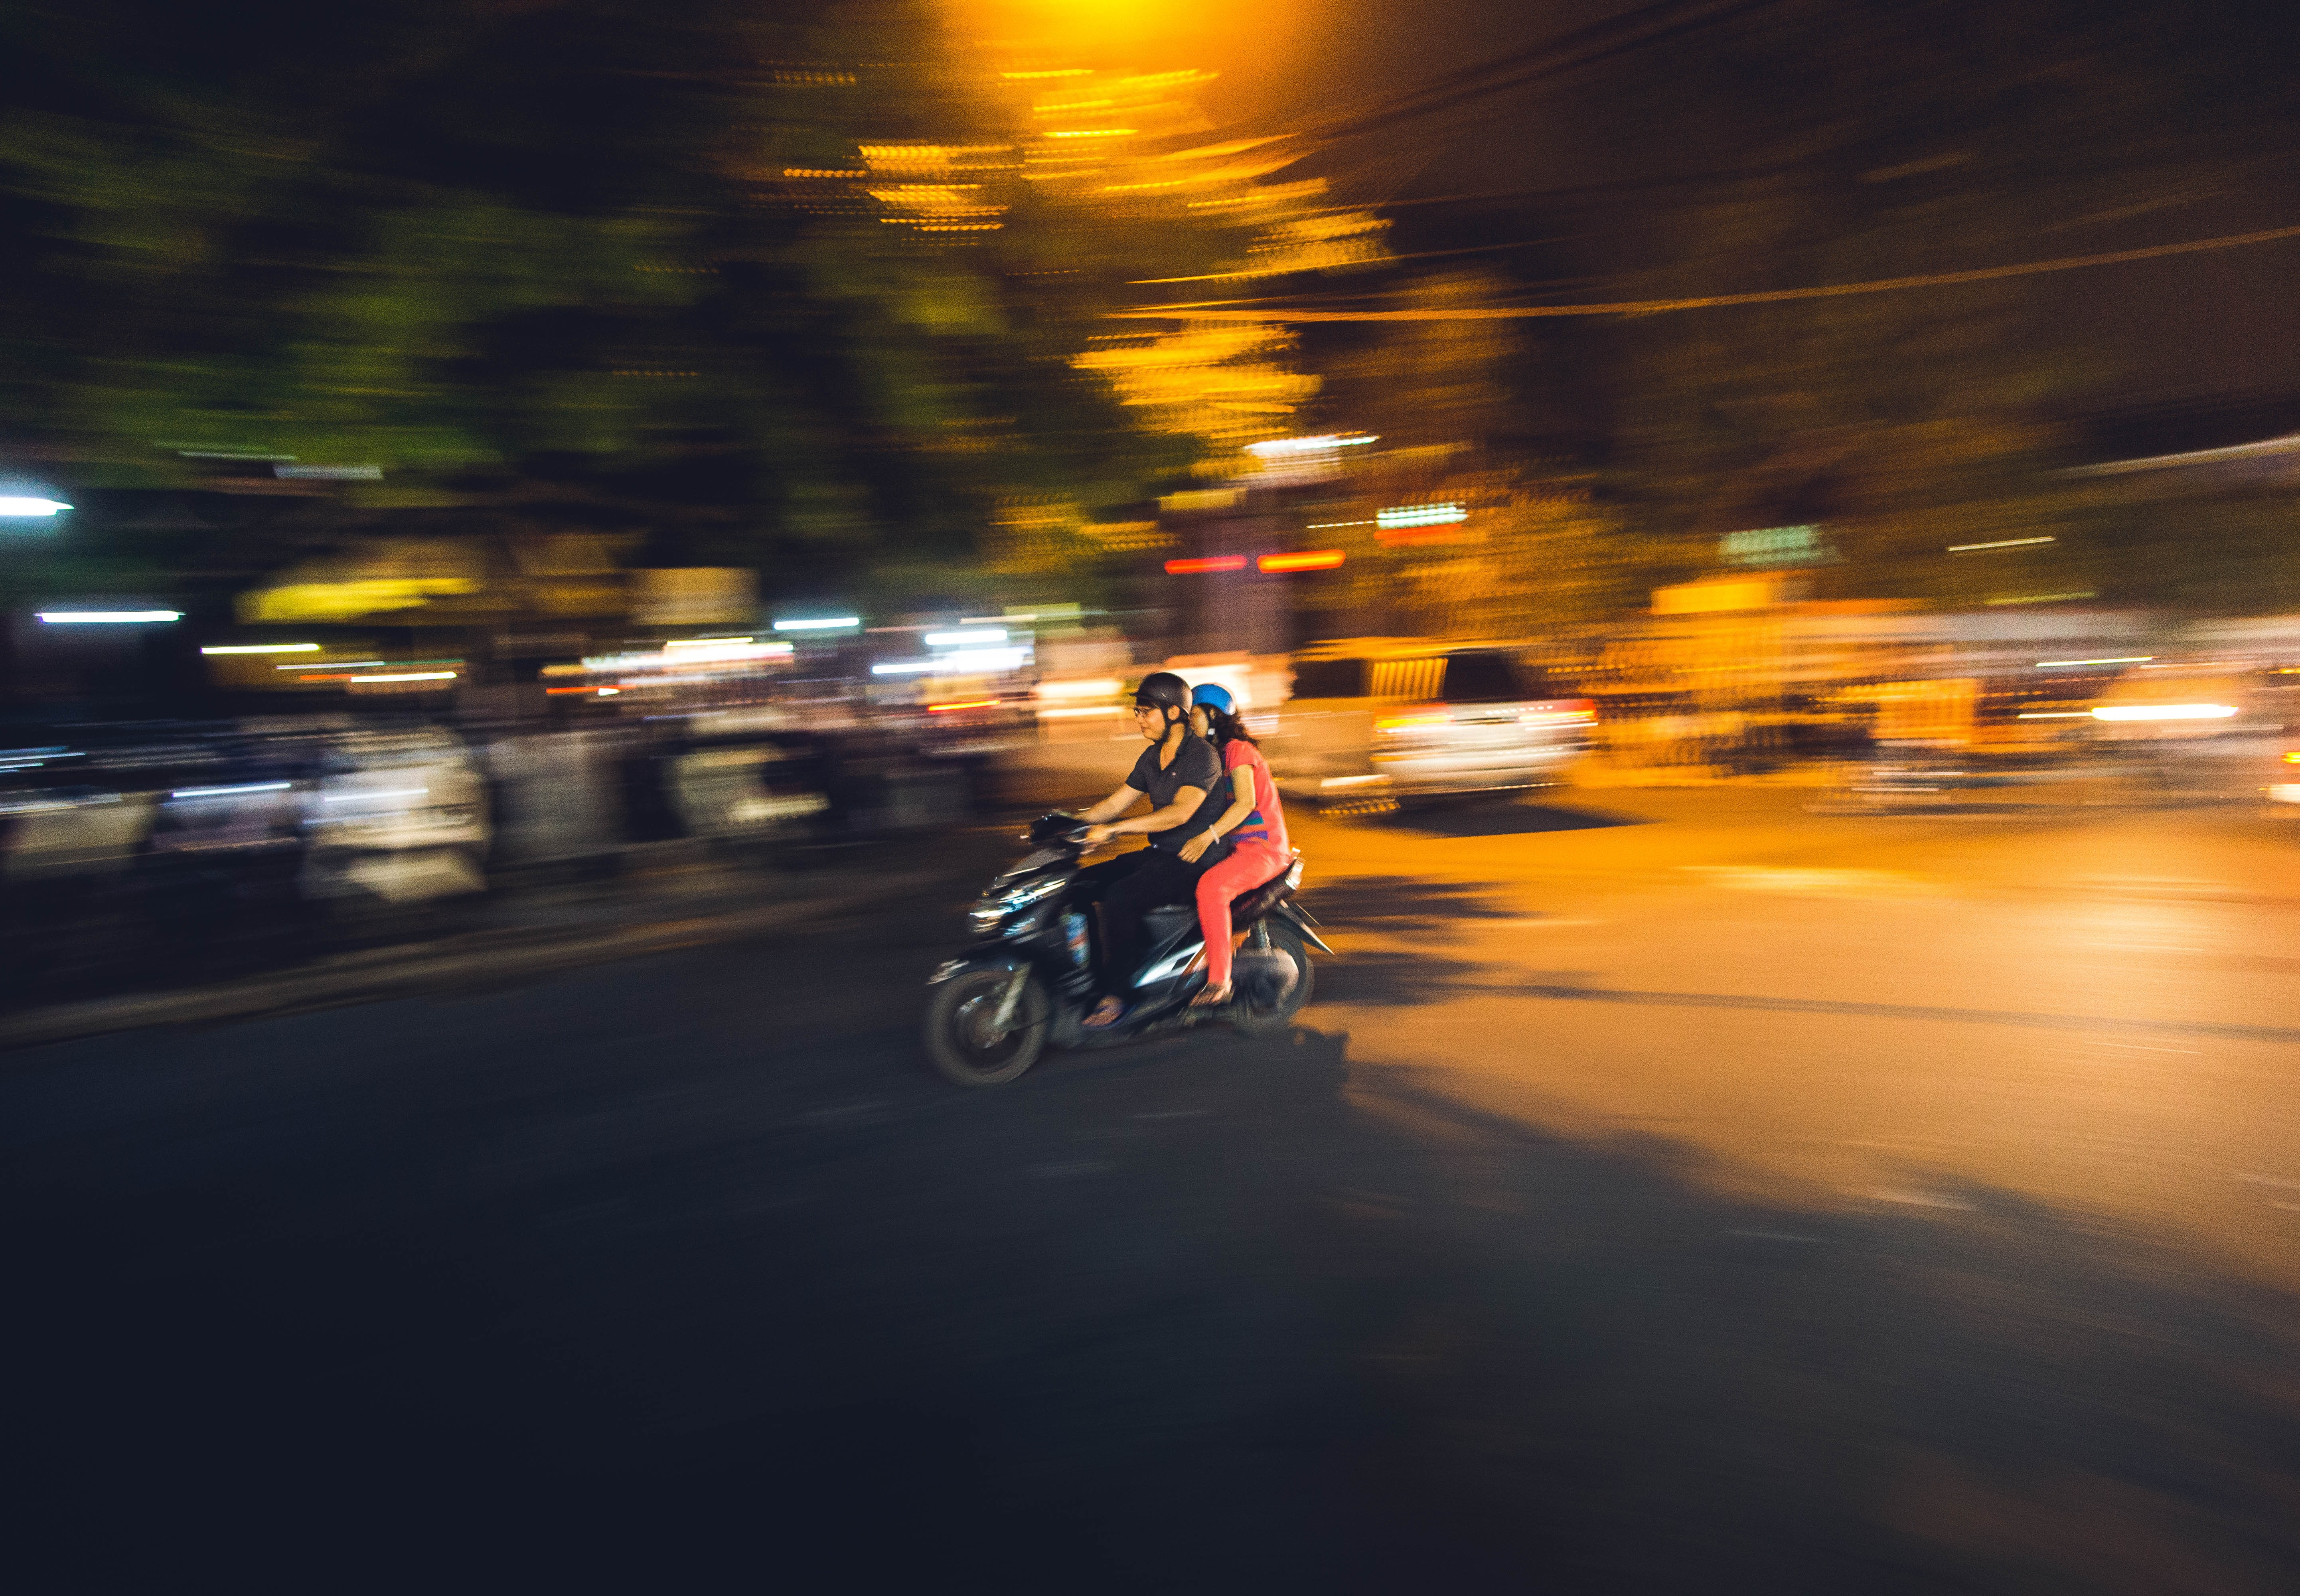 Two people riding motorbike at night under street lights in urban area